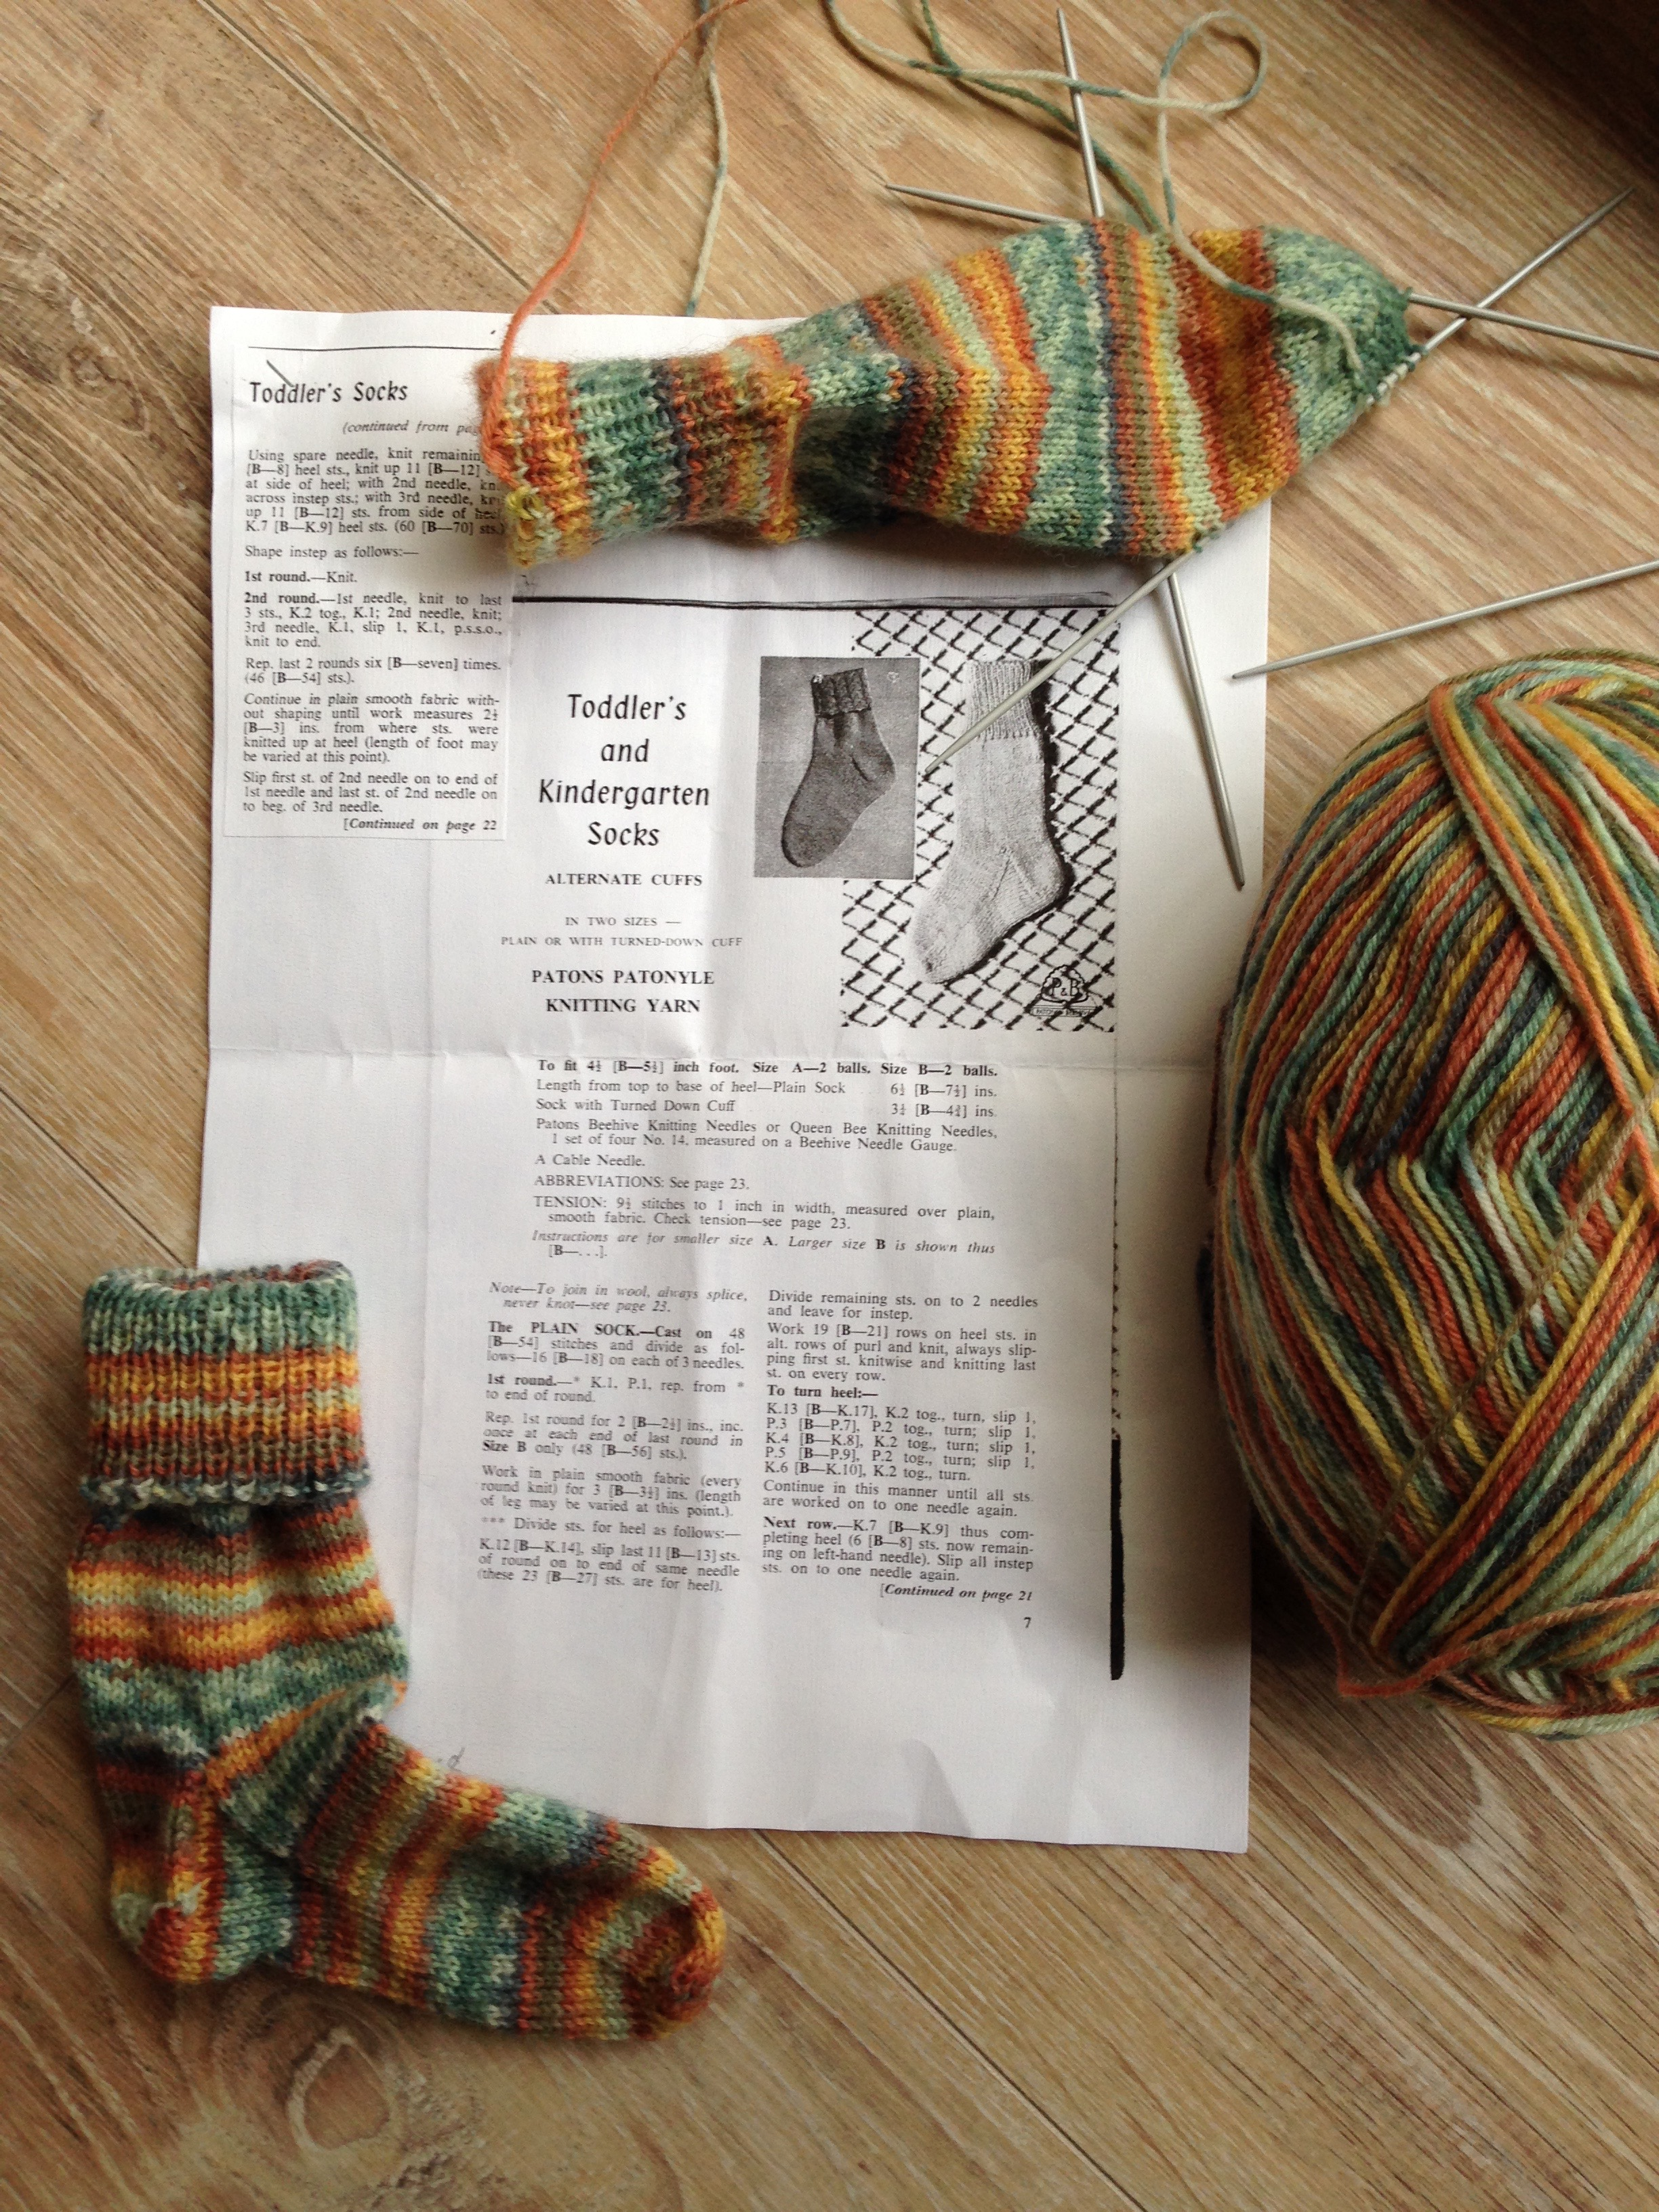 Socks gippsland granny some of you may recognise the wool from the dress i knitted for my granddaughter i was attempting to use up leftover wool i still have enough wool left in bankloansurffo Image collections